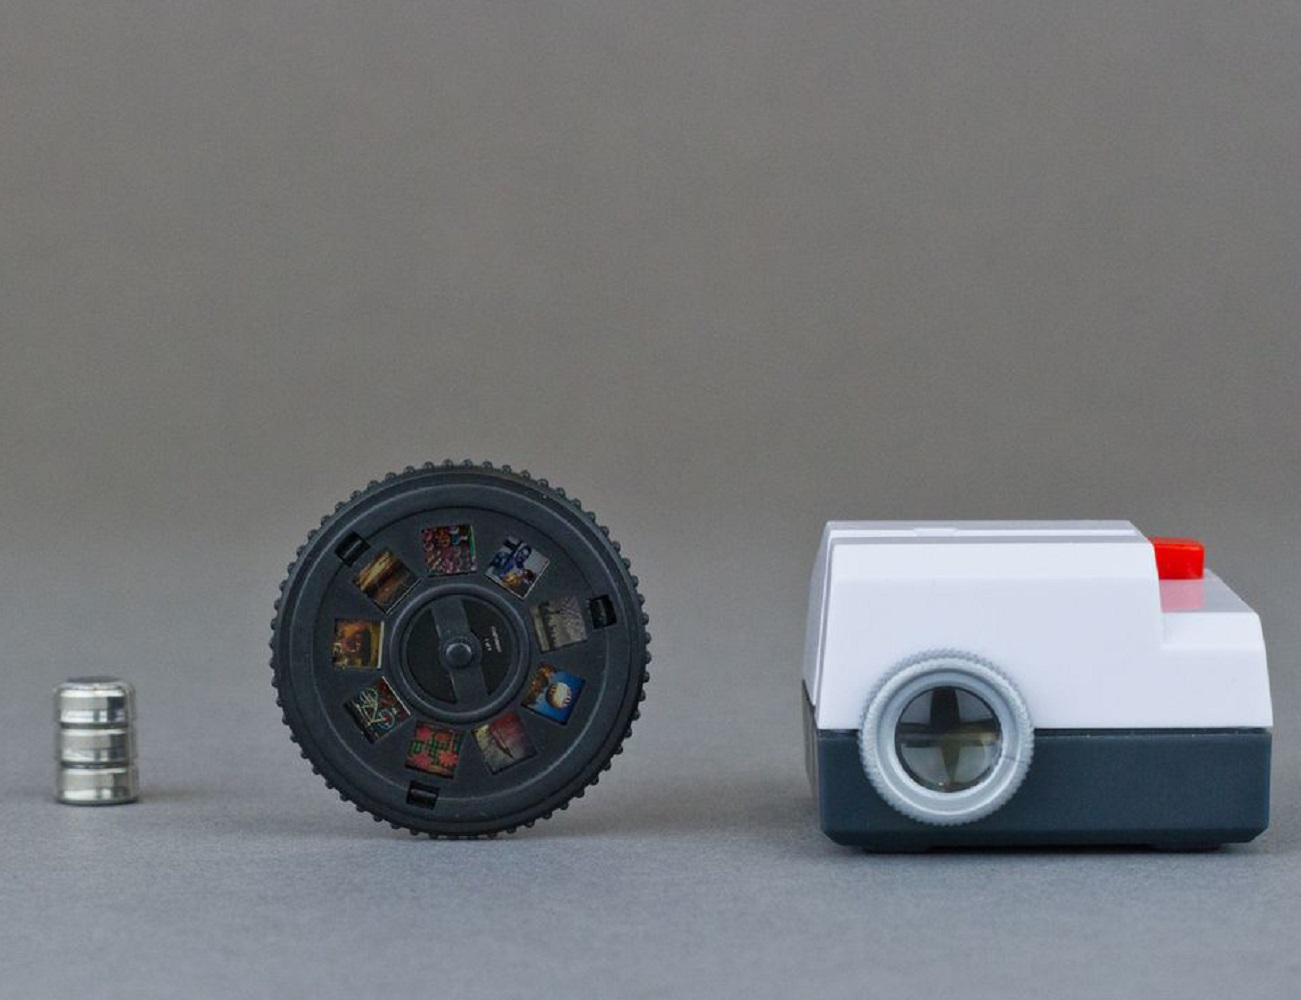 The+Tiny+Instagram+Projector+By+Projecteo